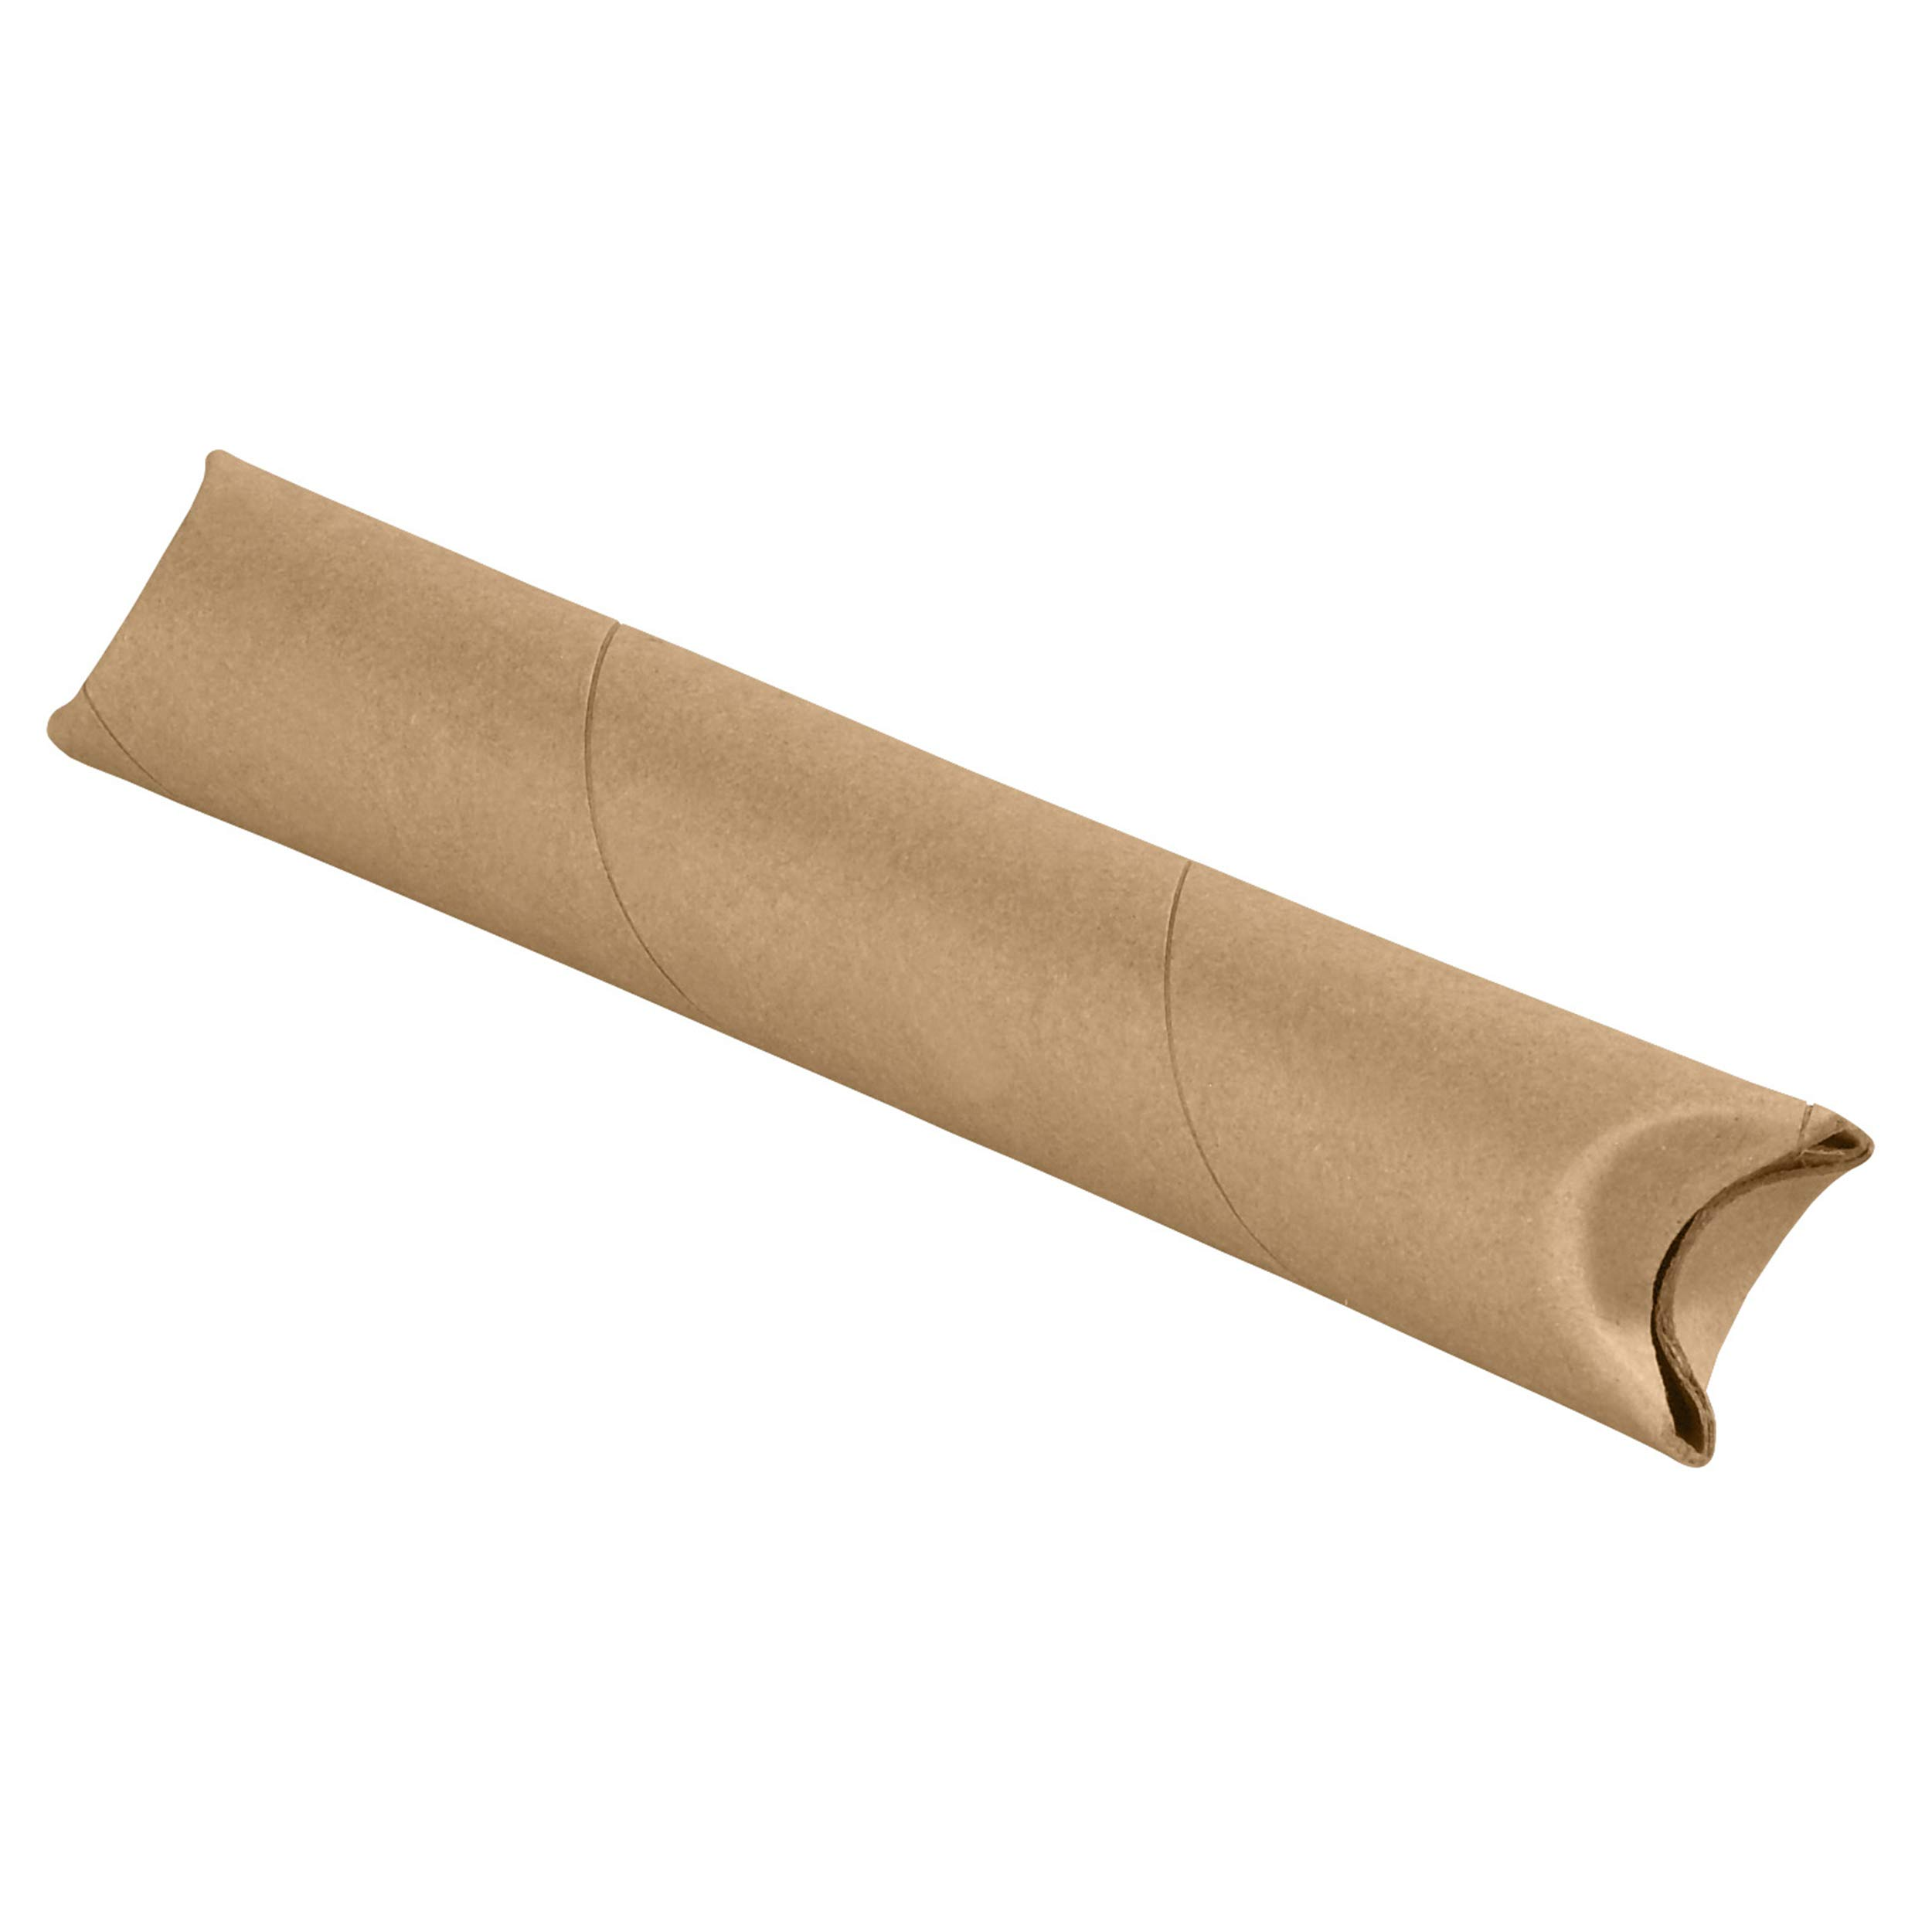 Crimped End Mailing Tubes, 1-1/2'' x 12'', Kraft, 70/Case by Great Box Supply